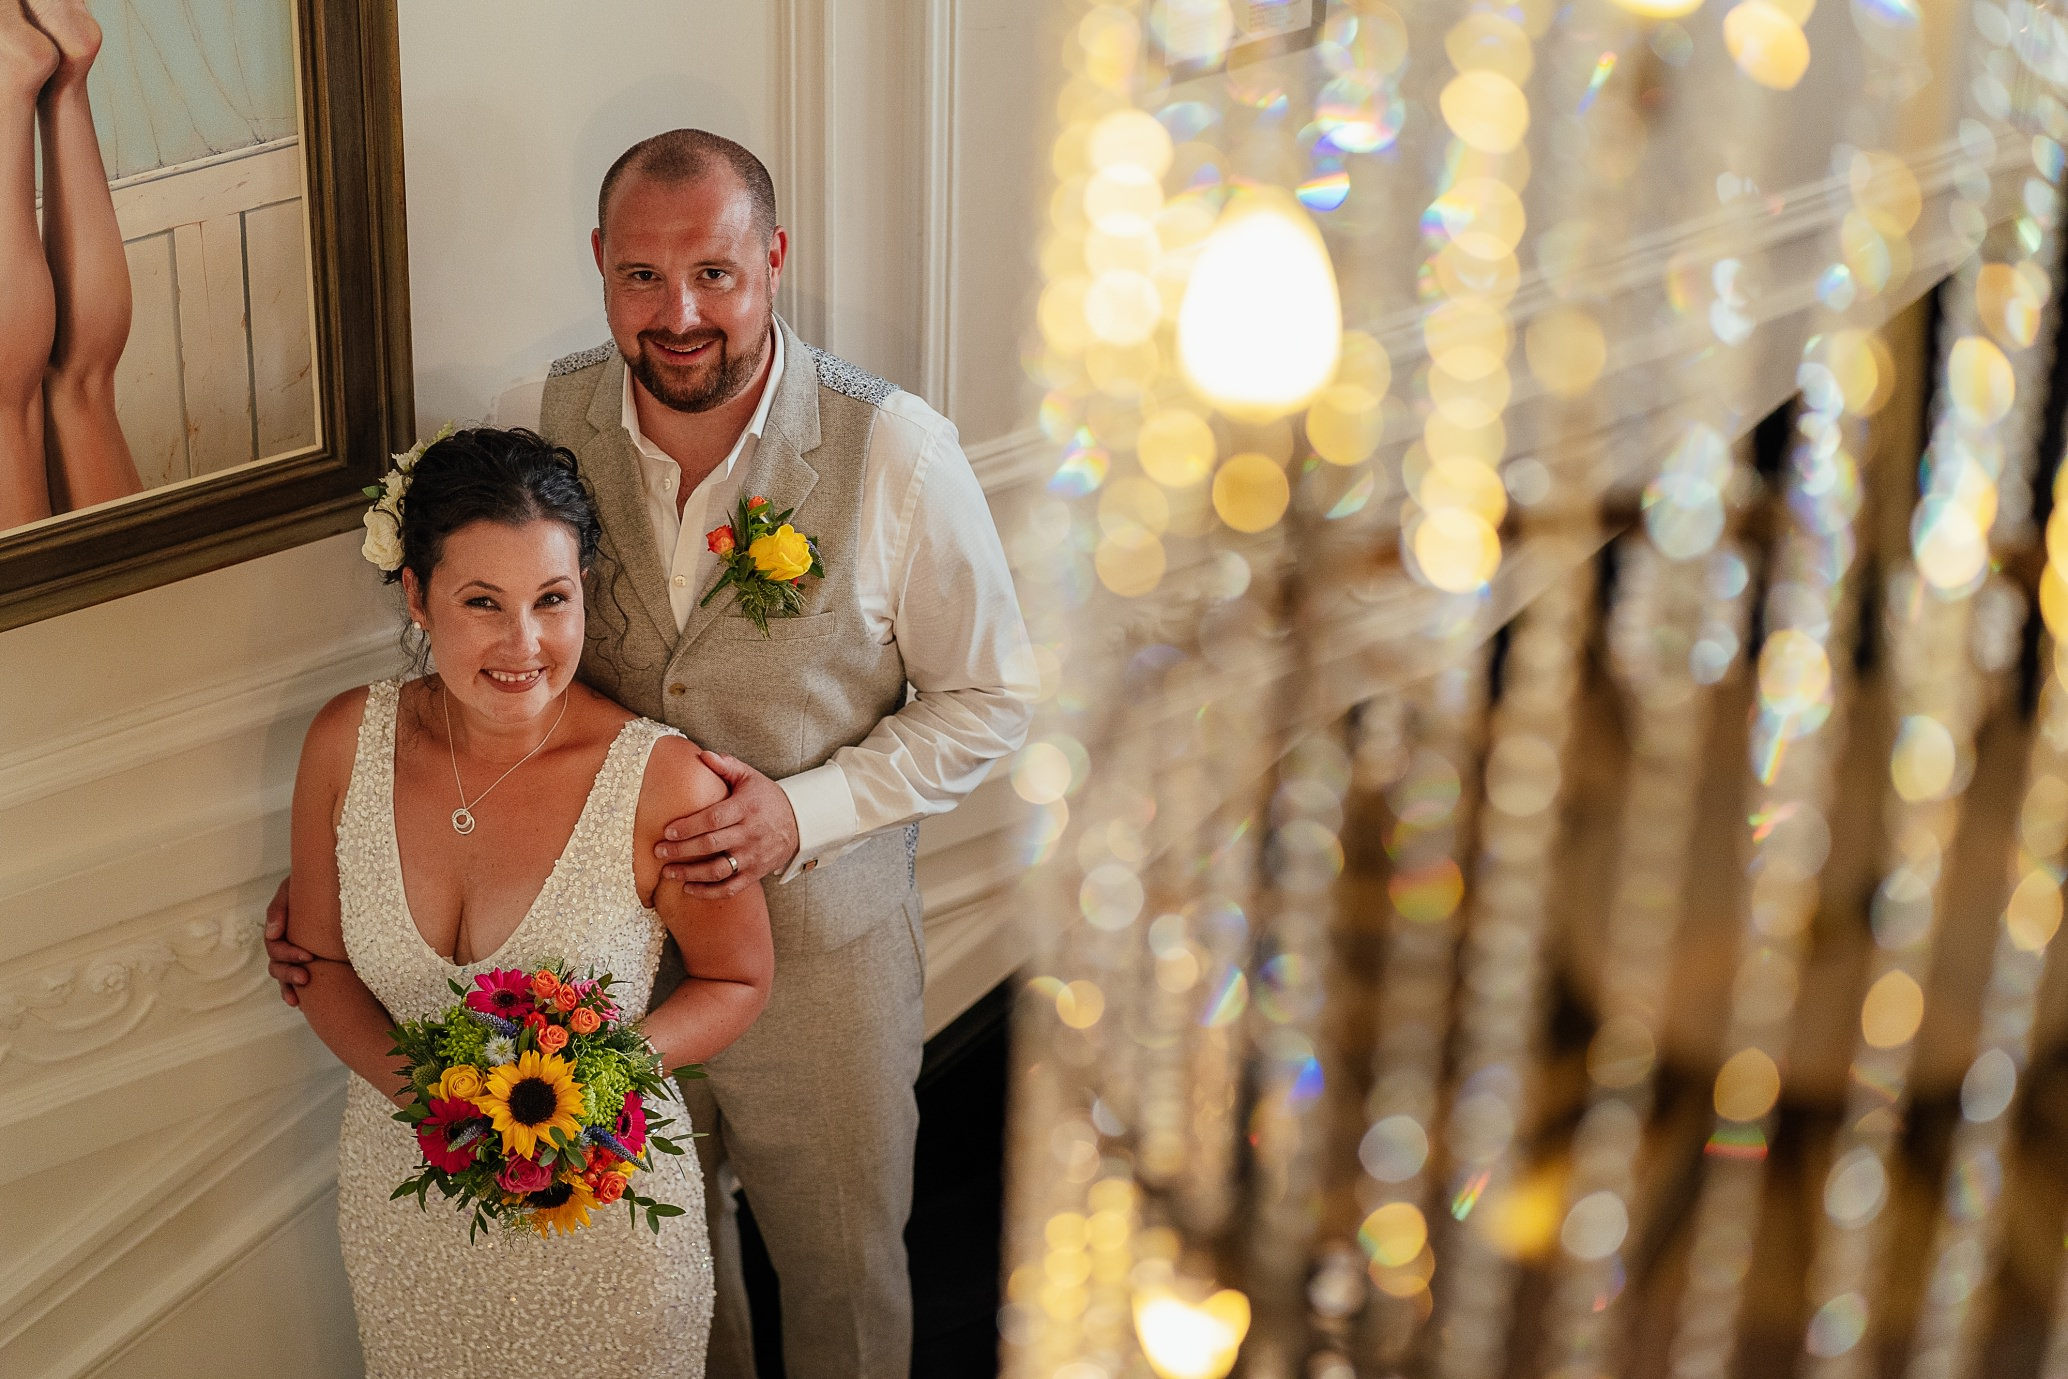 blythswood square glasgow private gardens wedding ceremony bride groom by chandelier at blythswood hotel